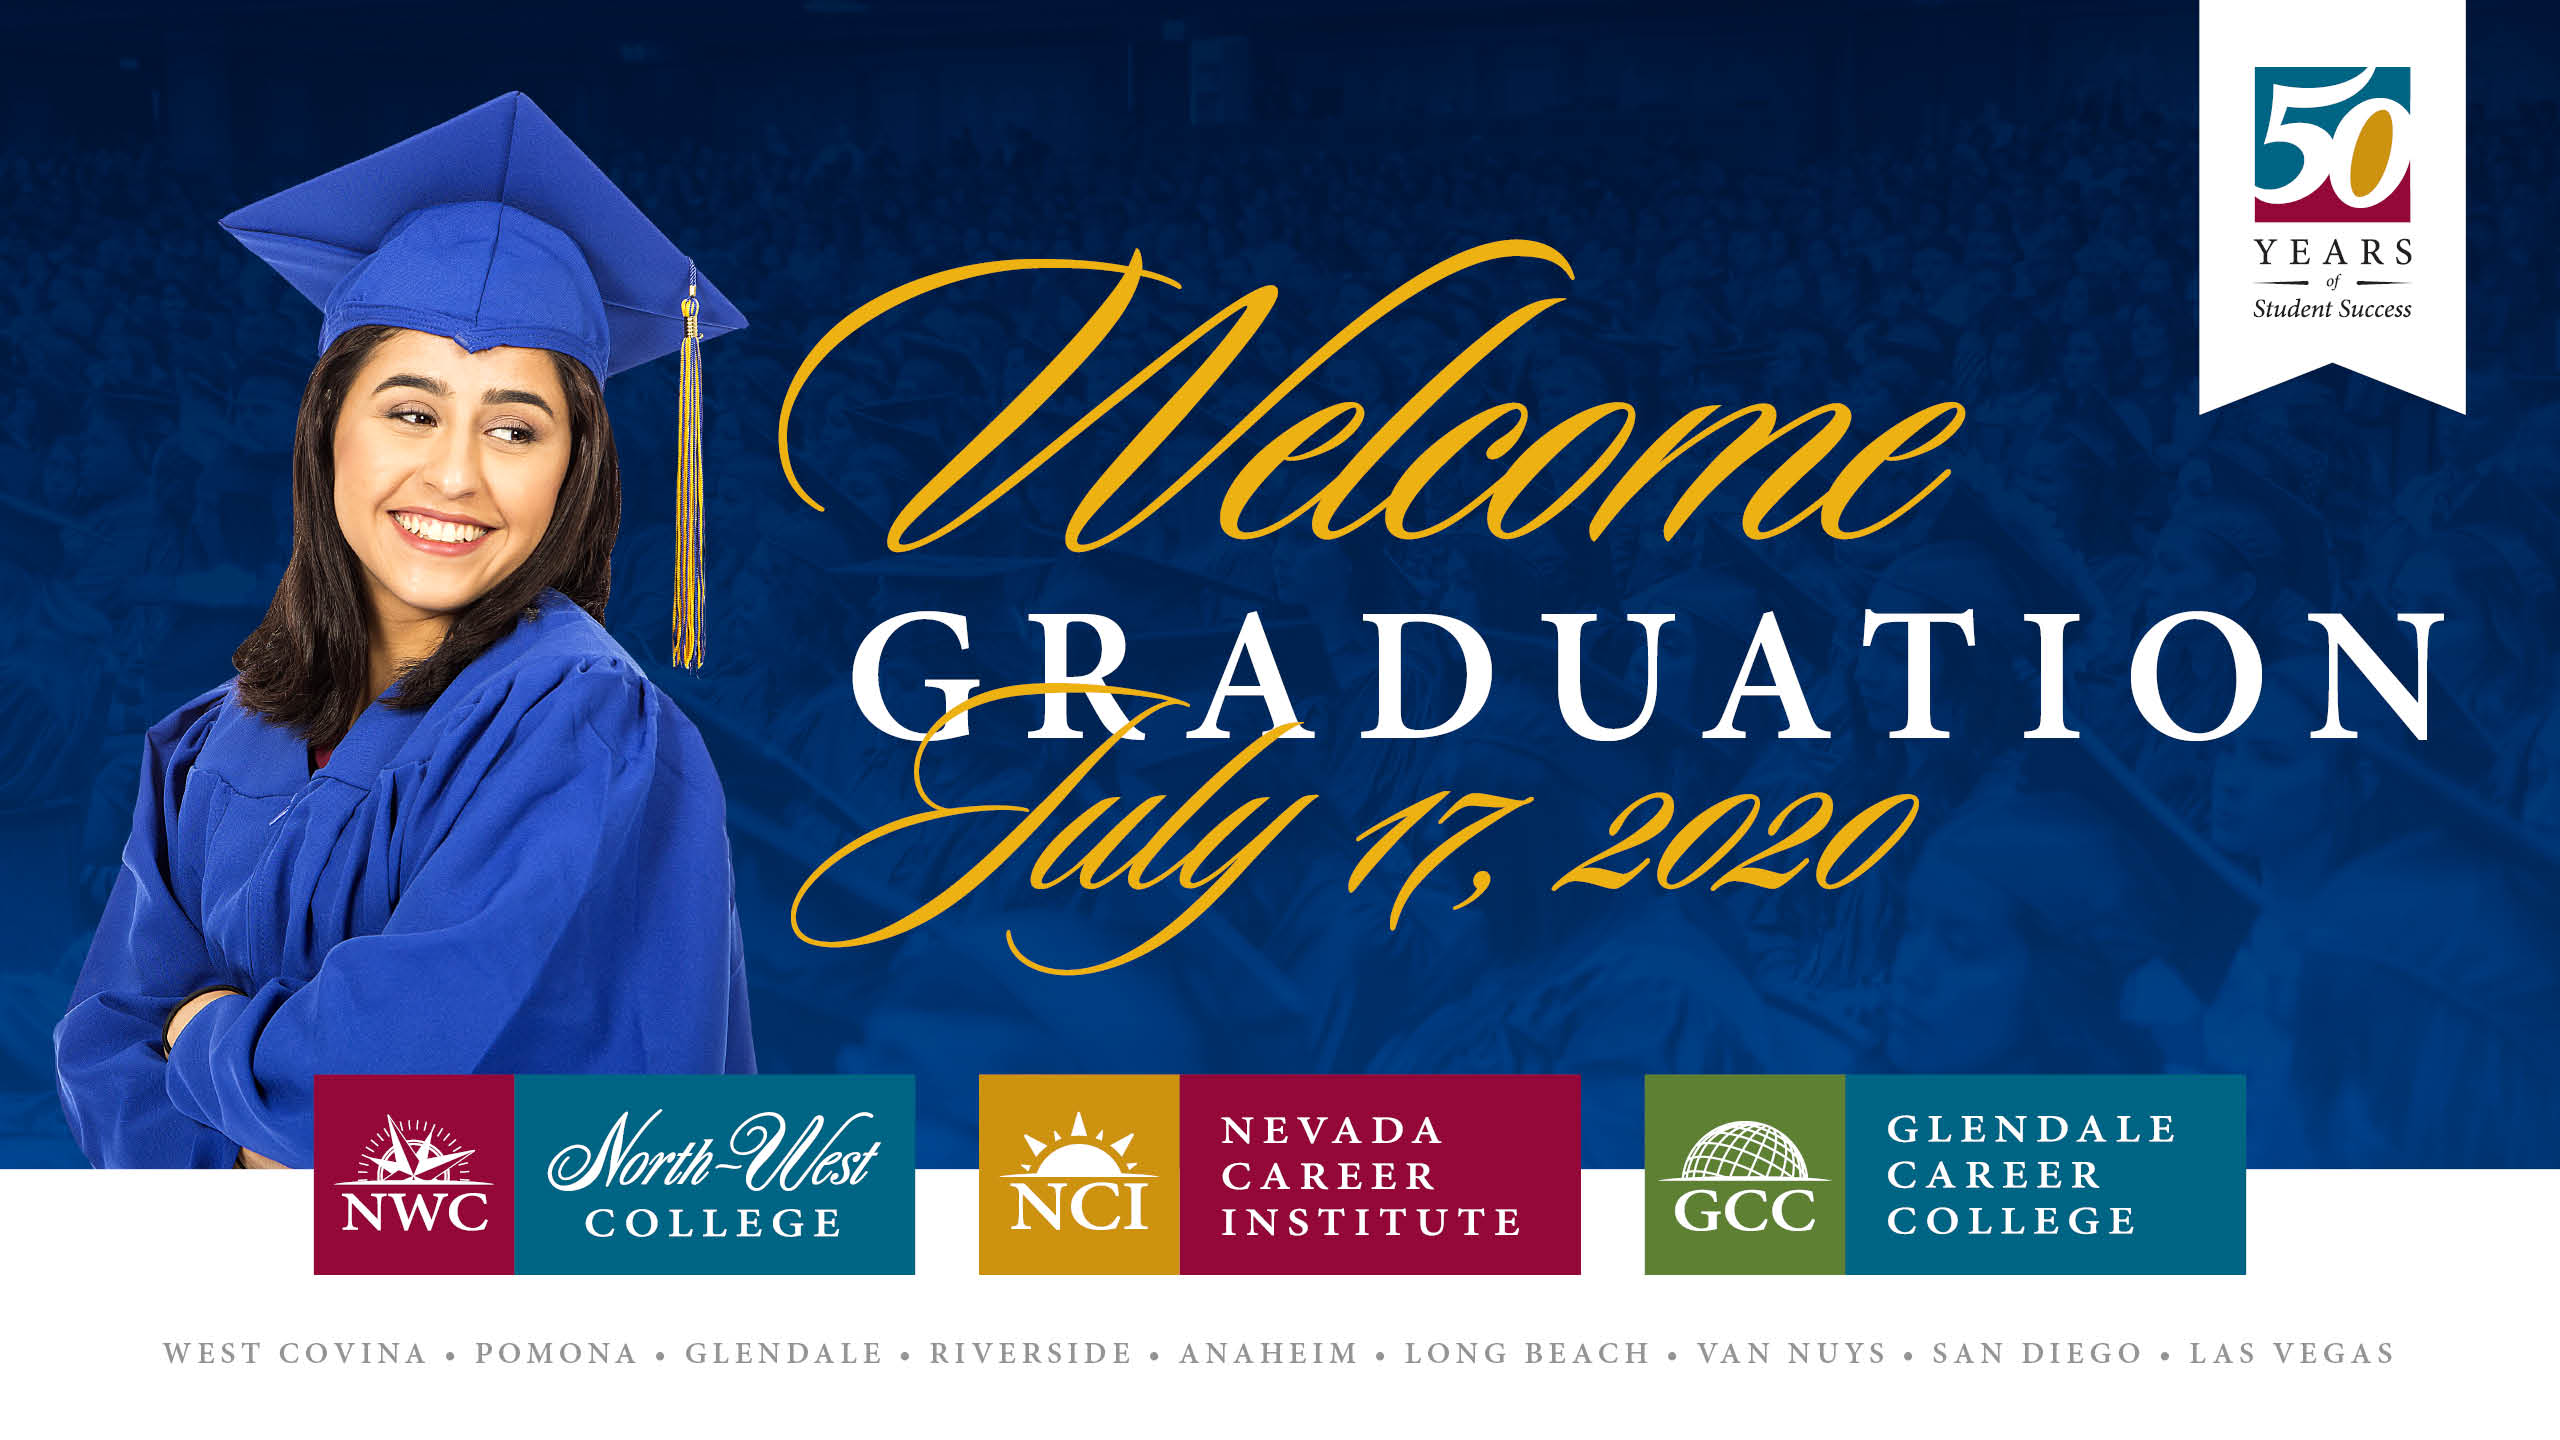 North-West College to Host Virtual Commencement Ceremony to Honor More Than 630 Graduates